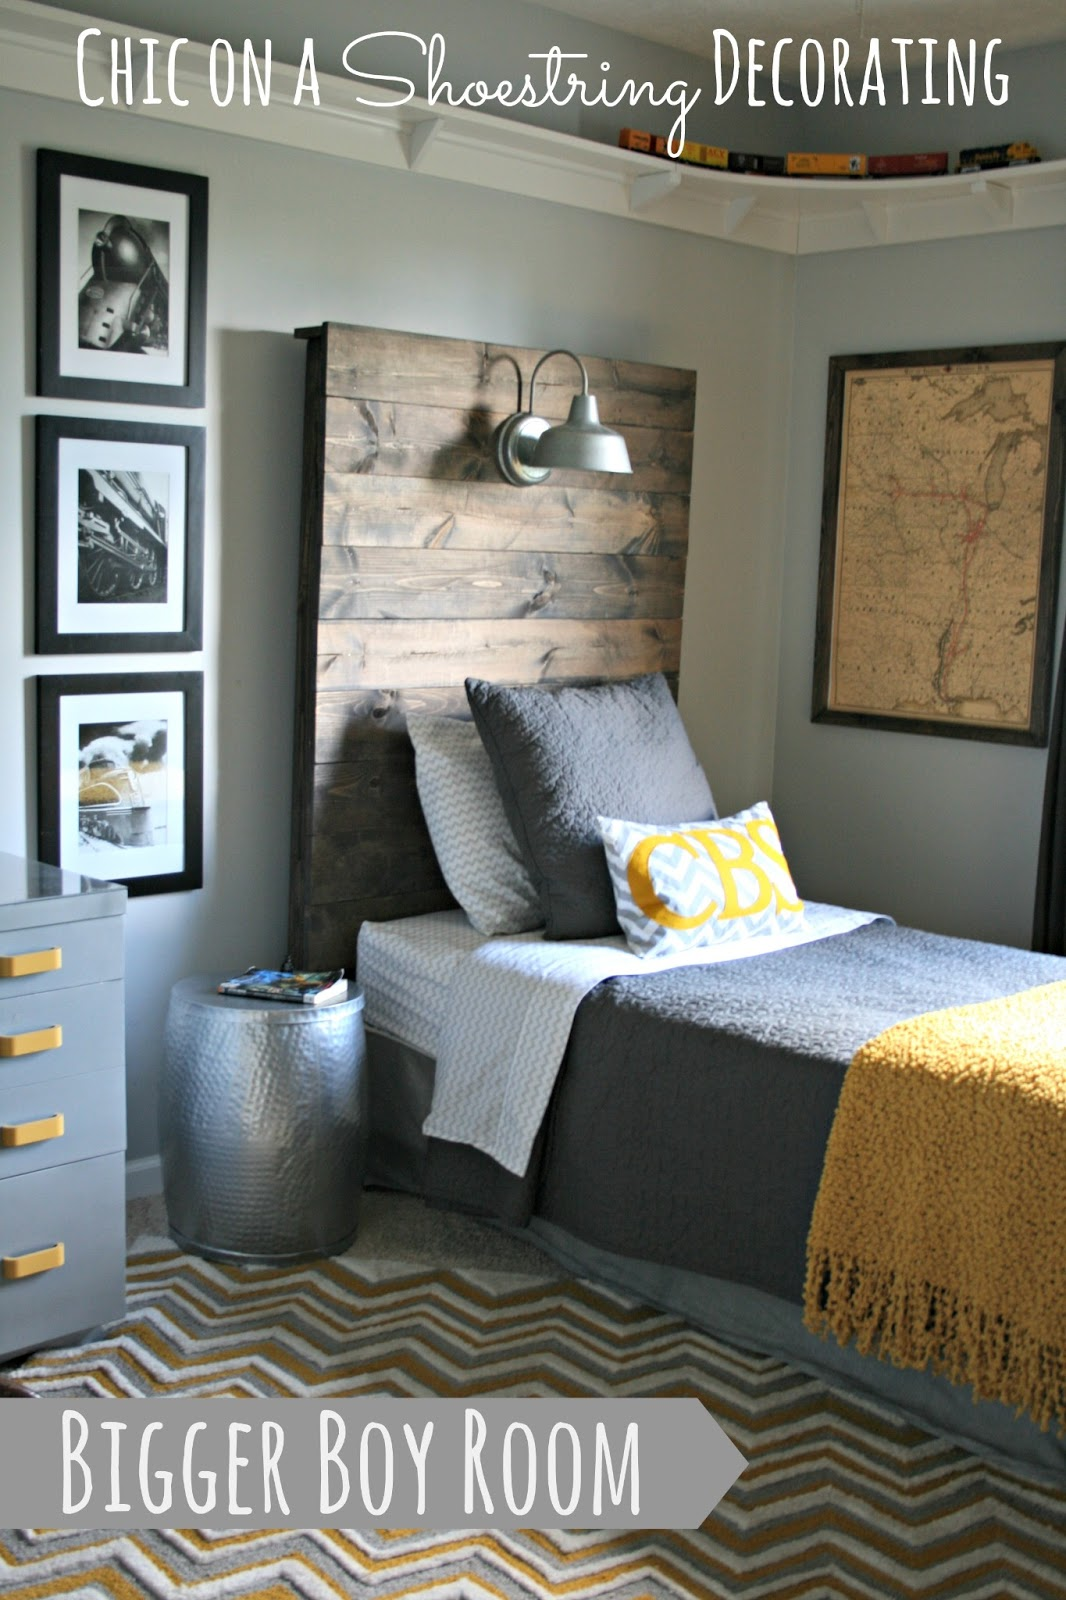 Chic on a shoestring decorating bigger boy room reveal for Room decor for 10 year old boy